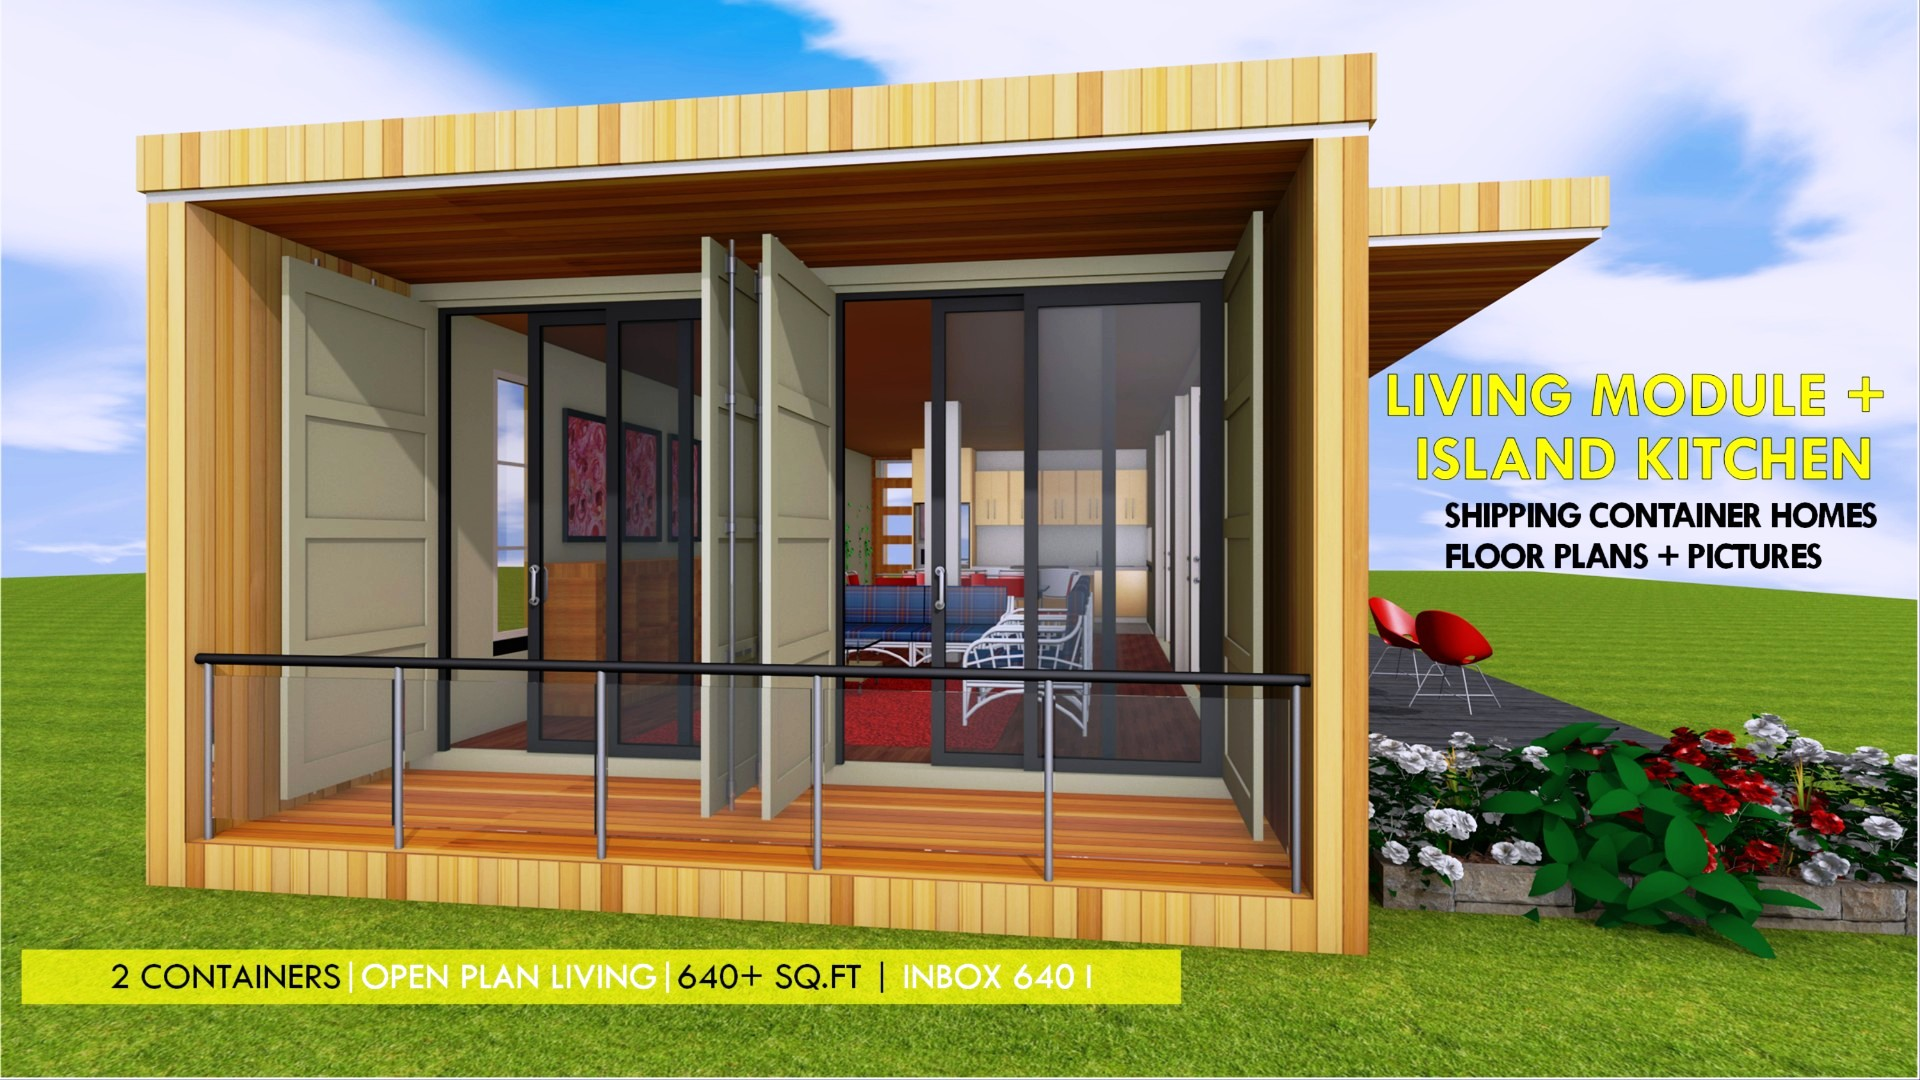 Shipping Container House Design Floor Plans For A Narrow Lot Unboxed 1280